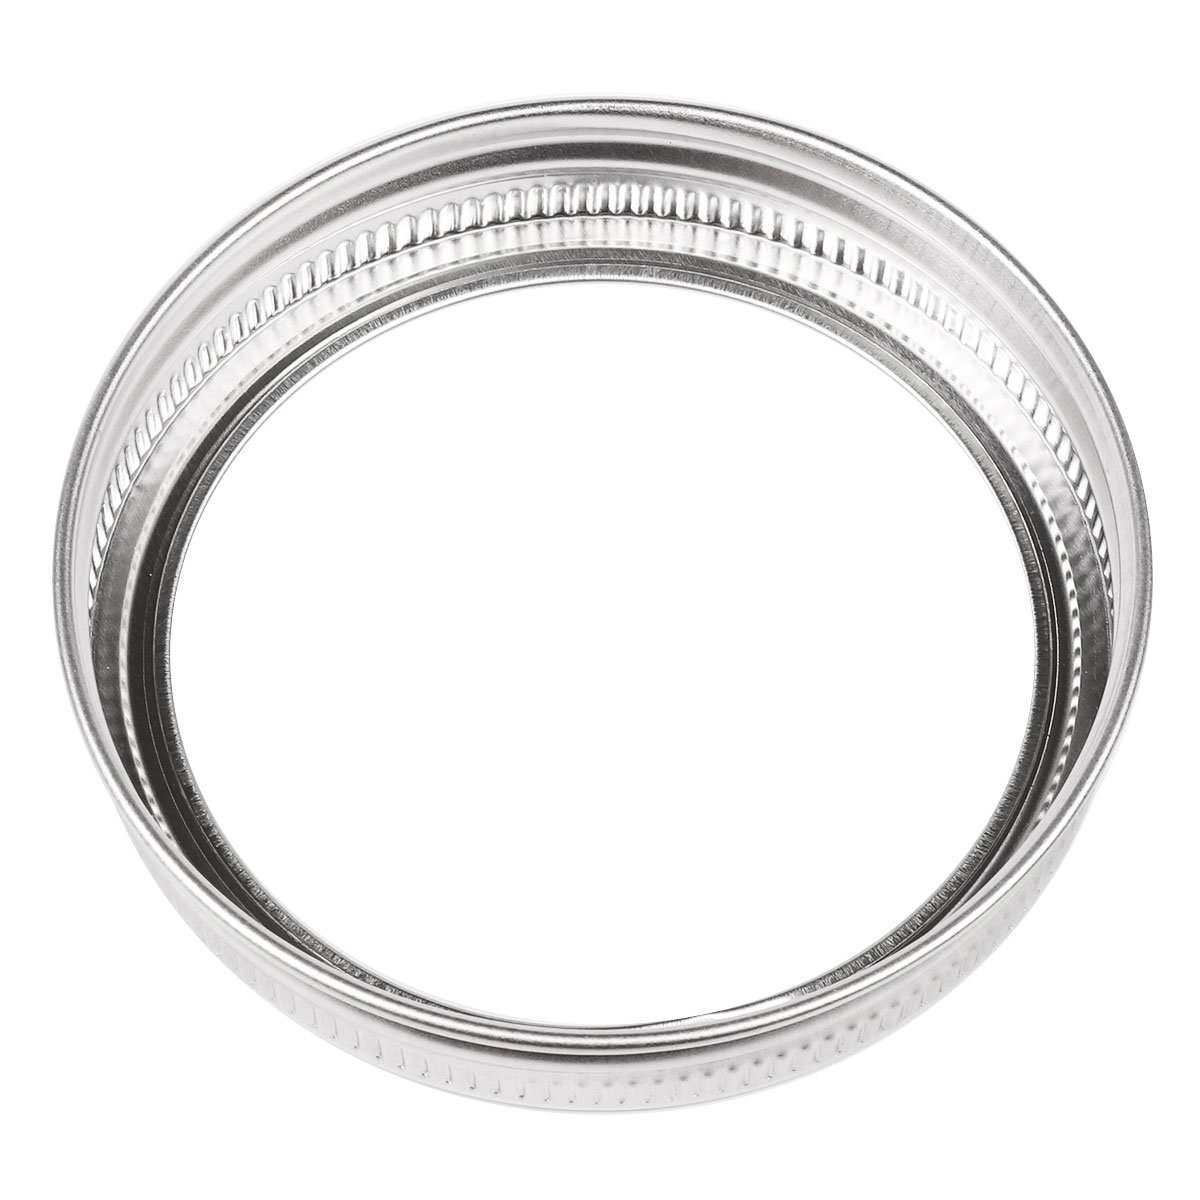 iiniim Stainless Steel Rust Resistant Screw Bands//Rings for Mason Ball 10 Pack Canning Jars